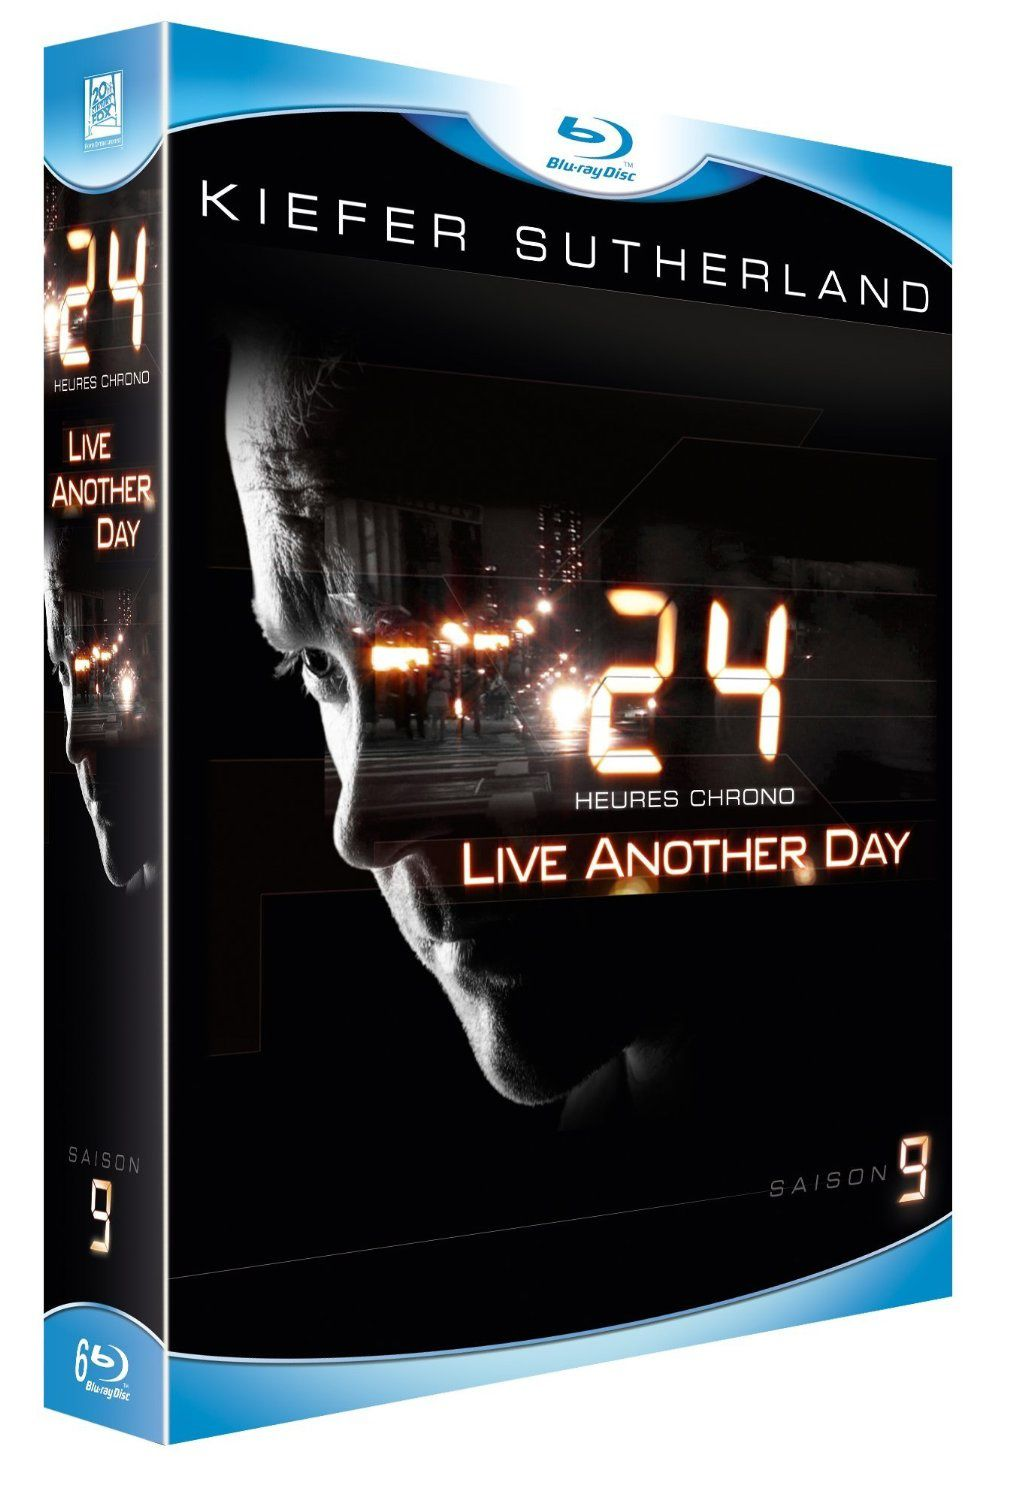 24 heures chrono saison 9 (live another day) en dvd/blu-ray